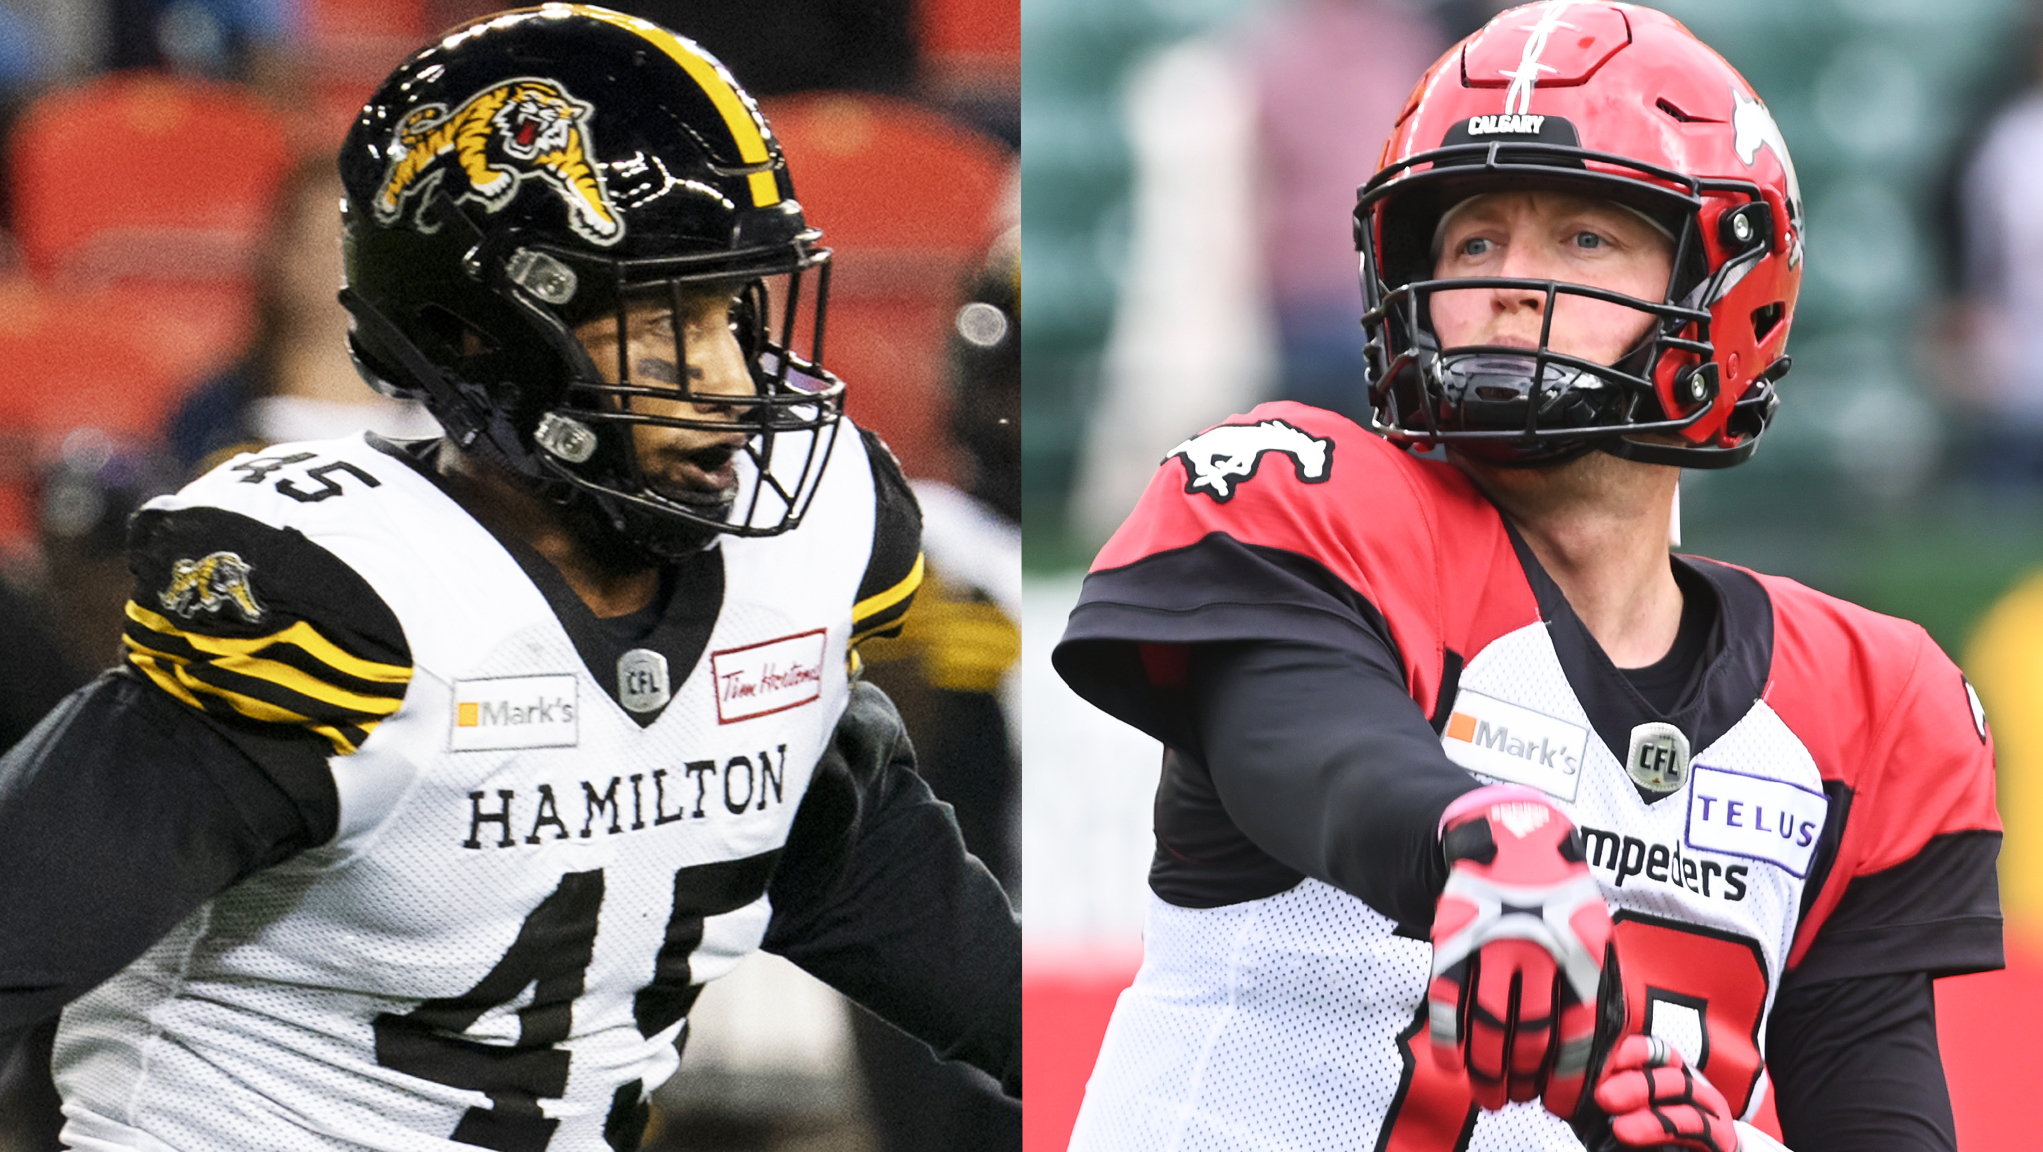 Ticats, Stamps kick off Week 7 action in Hamilton